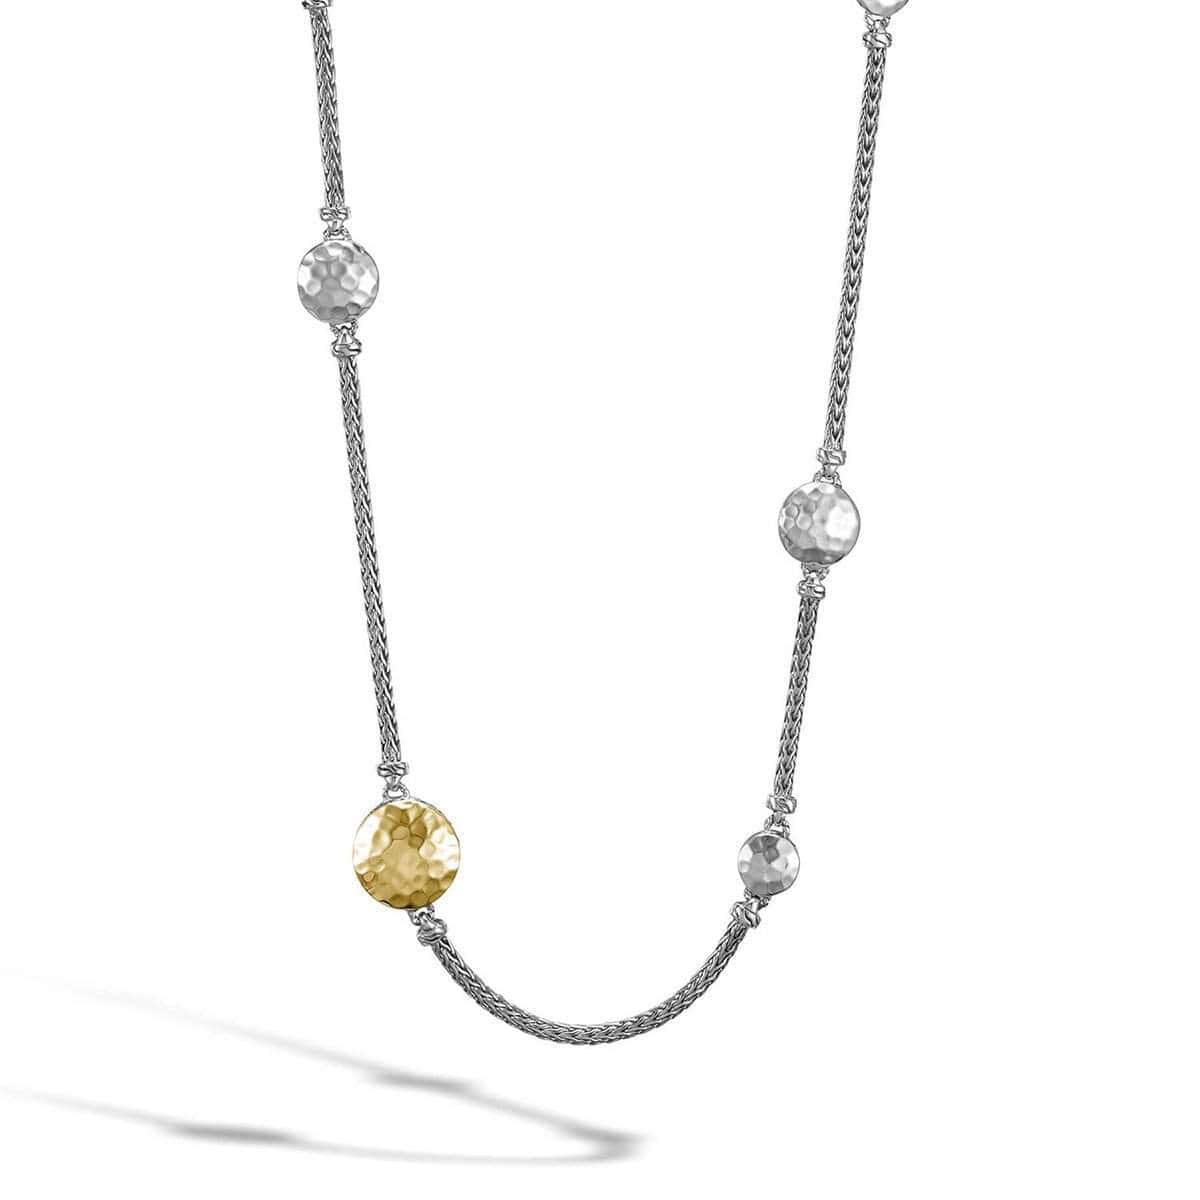 Dot Hammered Gold Silver Station Sautoir Necklace - NZ7161-John Hardy-Renee Taylor Gallery